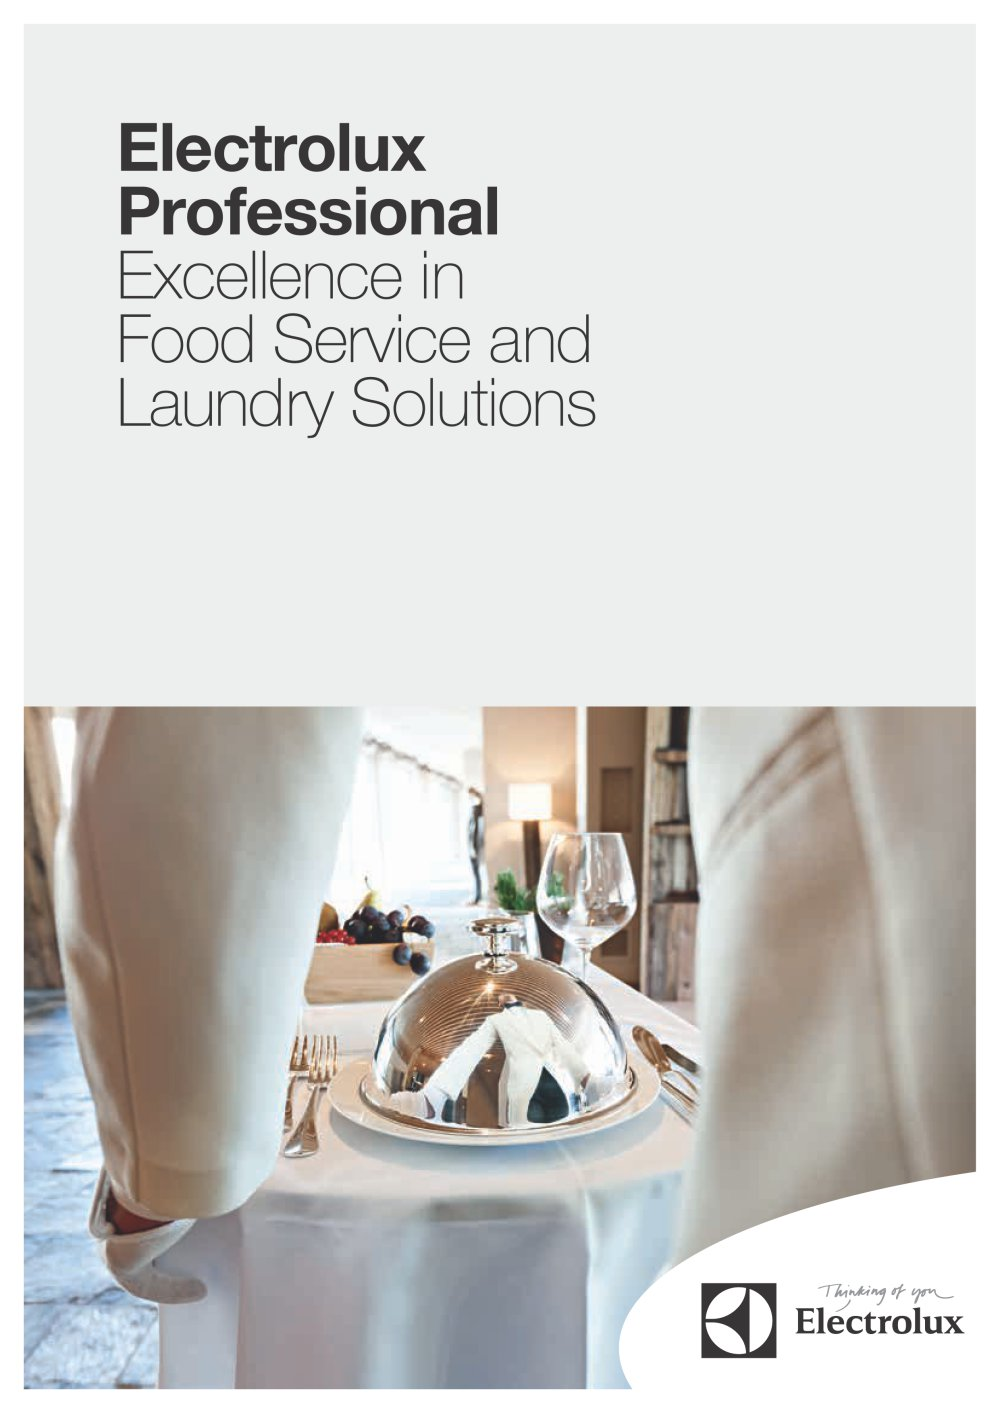 Excellence in Food Service and Laundry Solutions - Electrolux ...